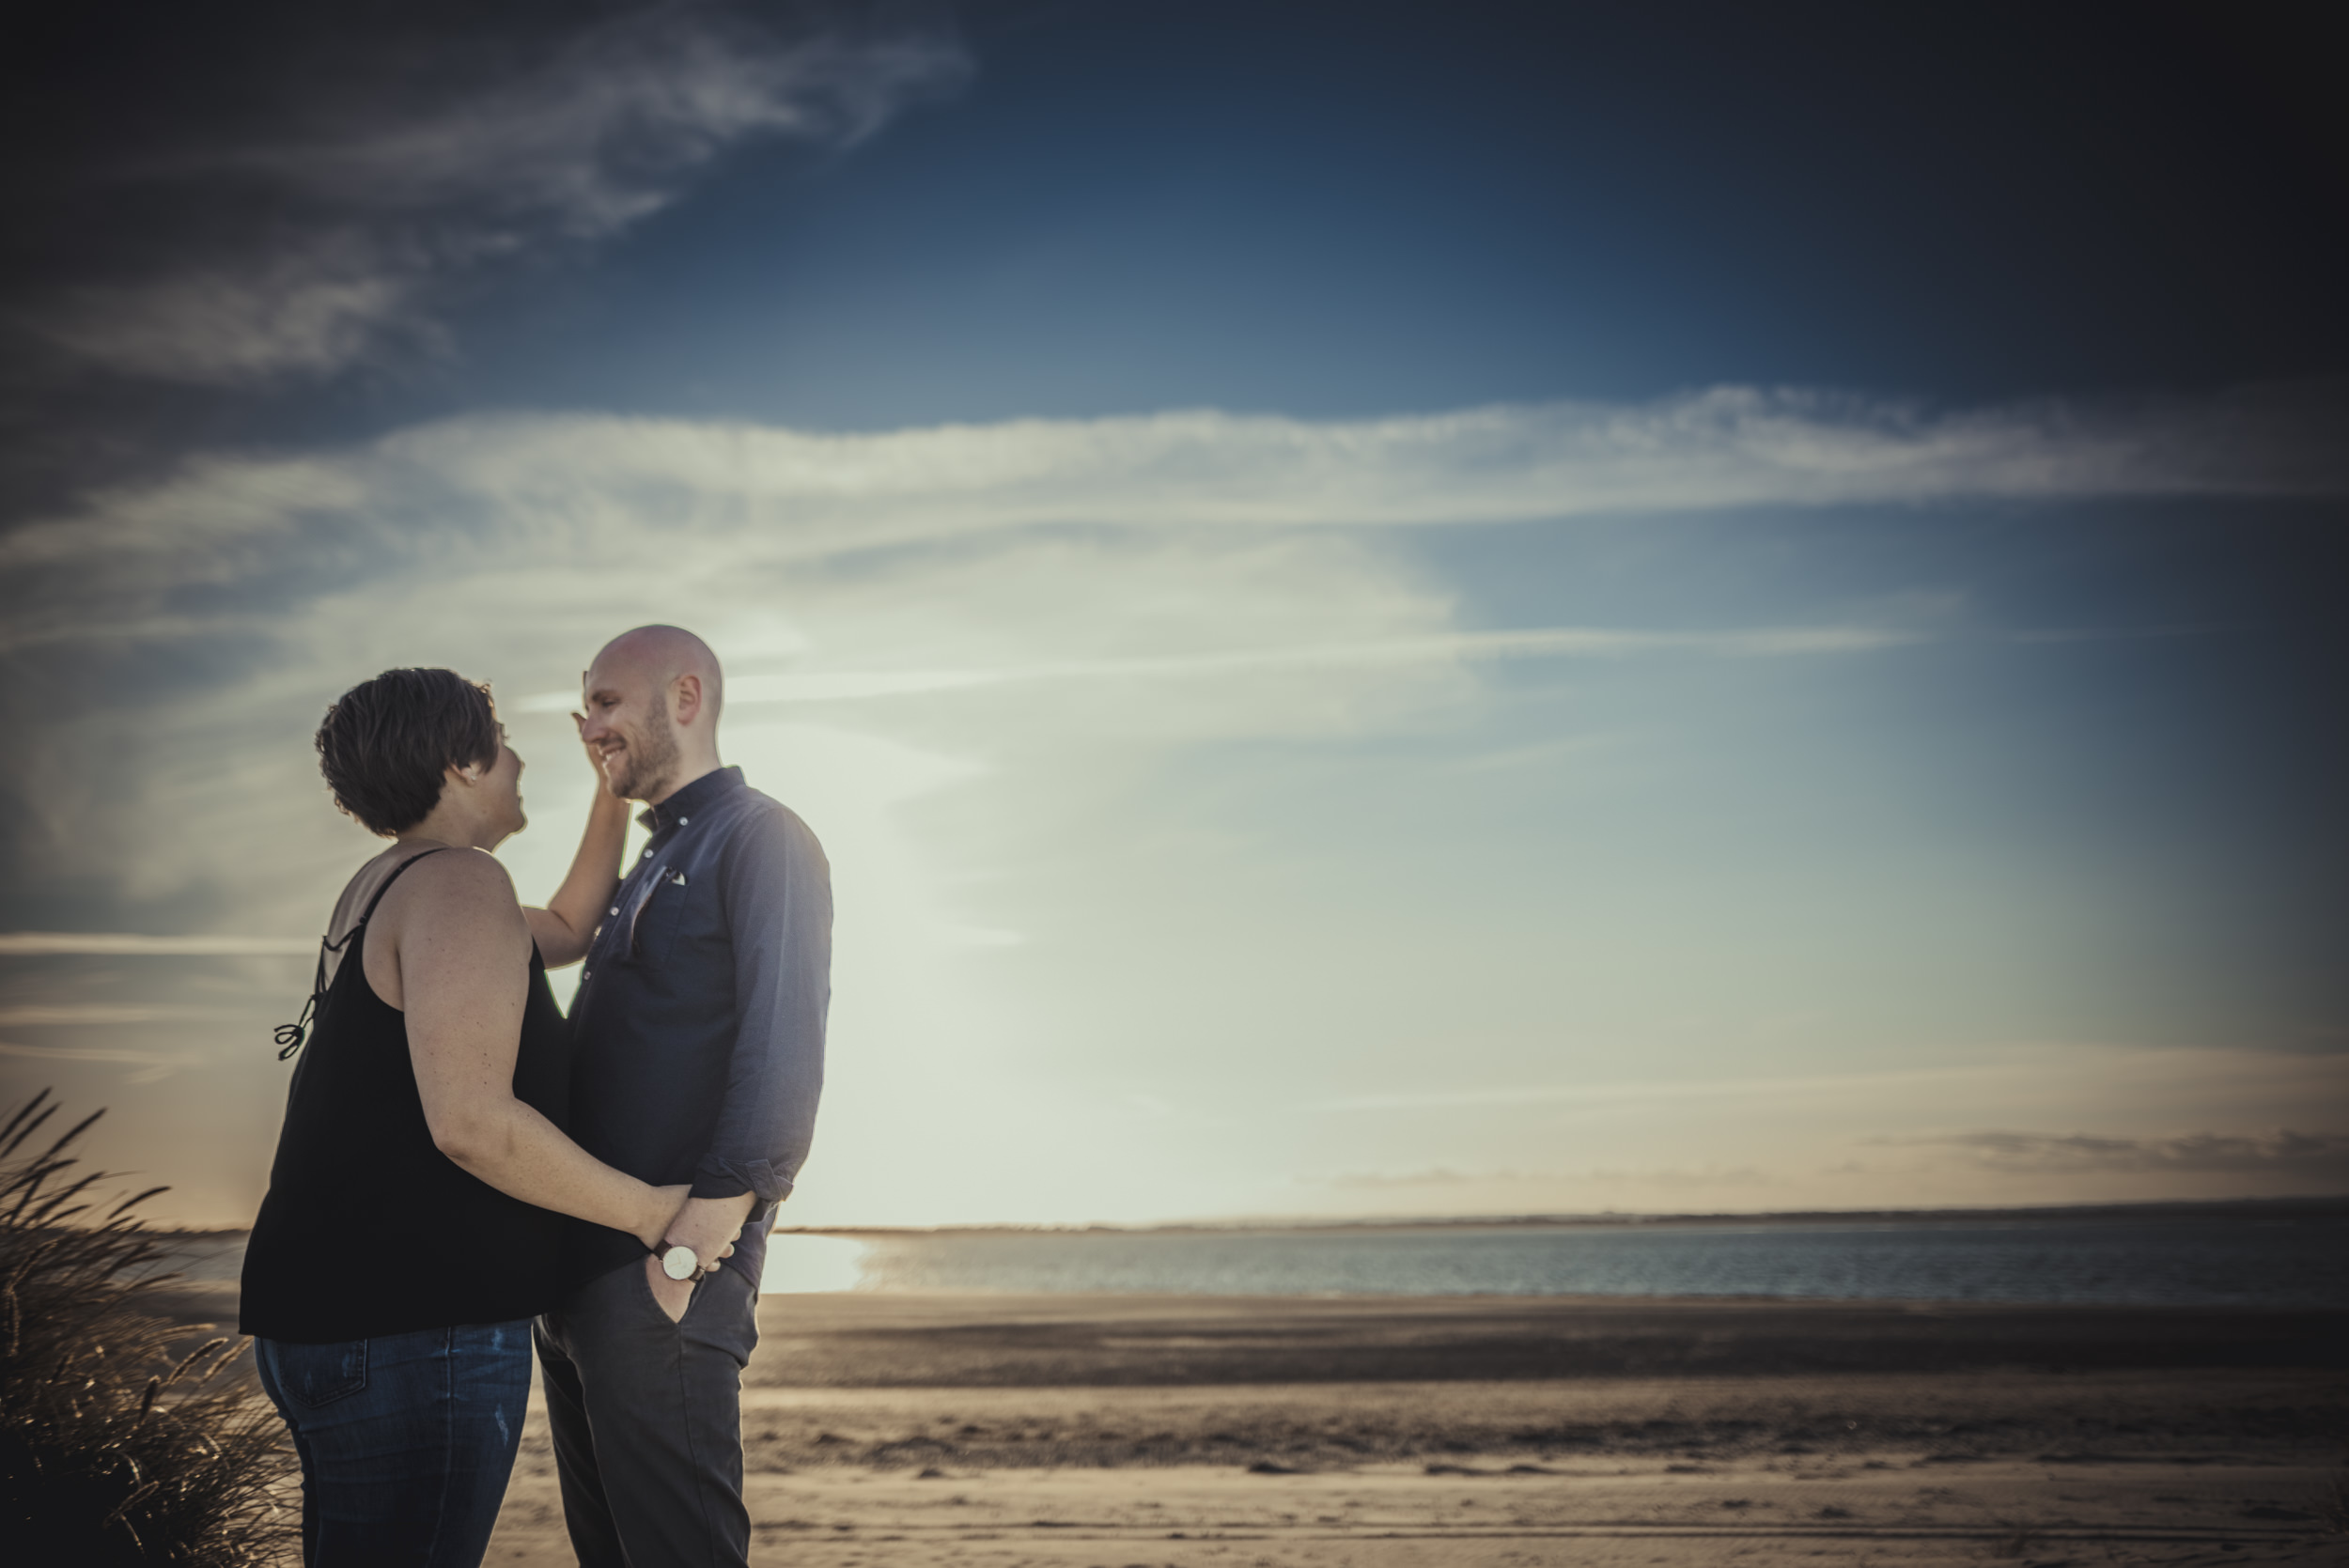 Tara-and-Simon-Engagement-Session- West-Wittering-Beach-West-Sussex-Manu-Mendoza-Wedding-Photography-030.jpg